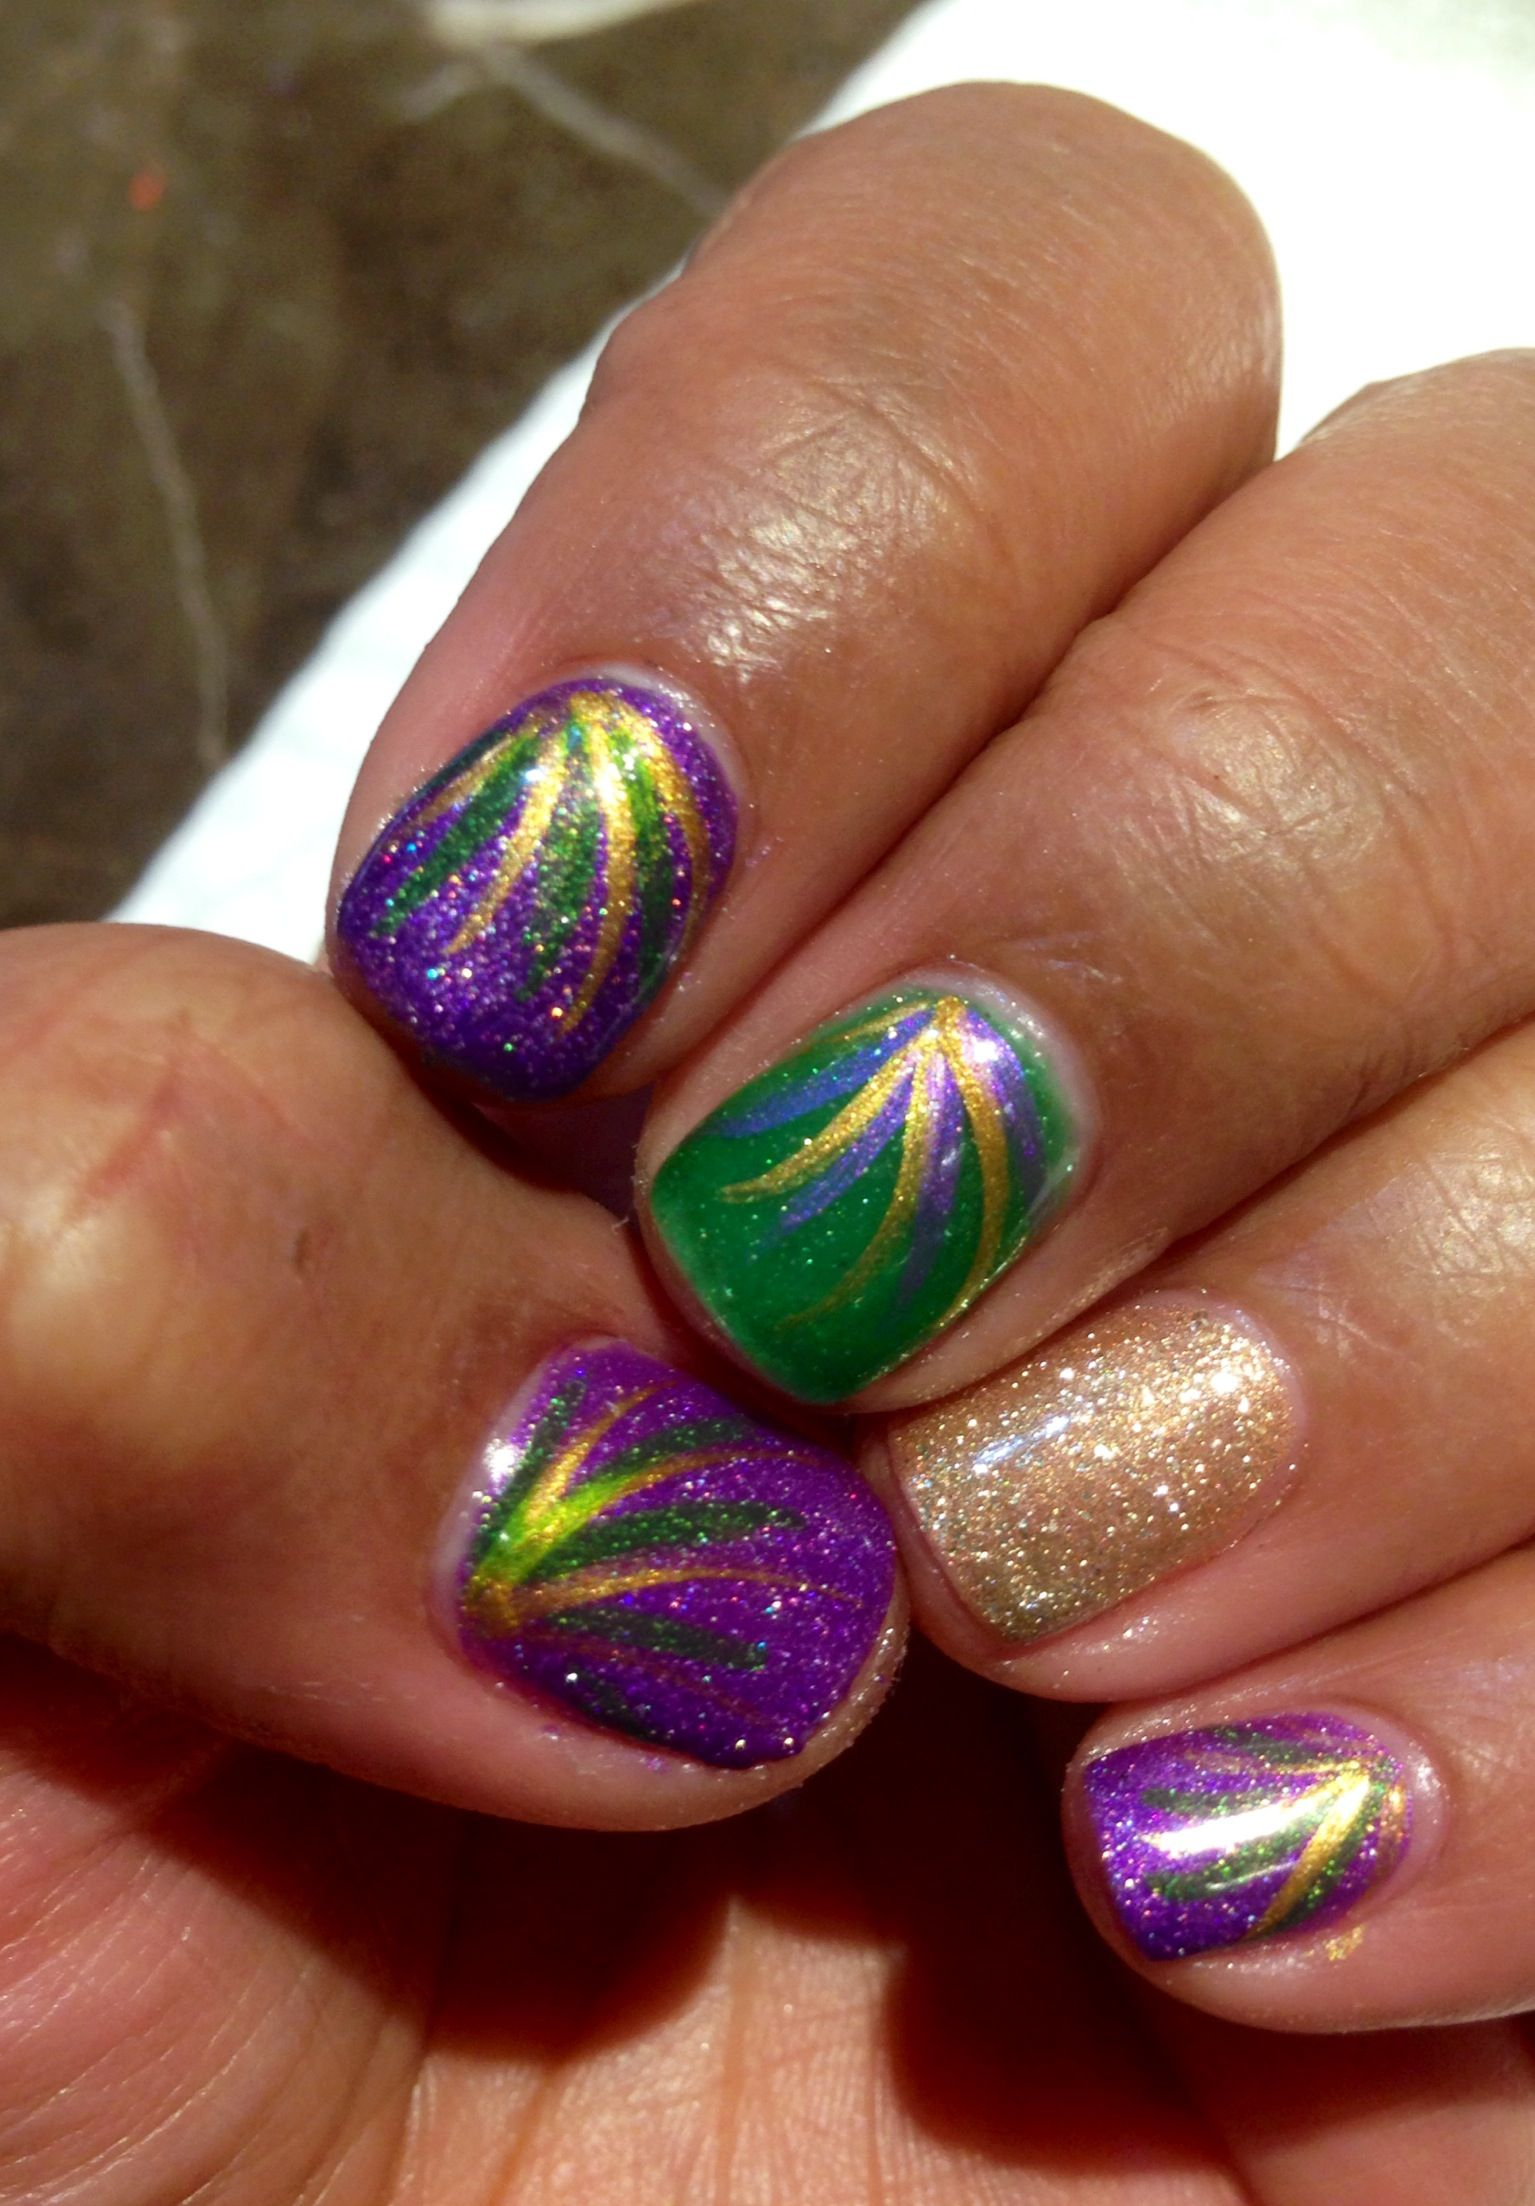 Mardi Gras nails! By: Bonjour Nails in Galveston, Texas - Mardi Gras Nails! By: Bonjour Nails In Galveston, Texas February